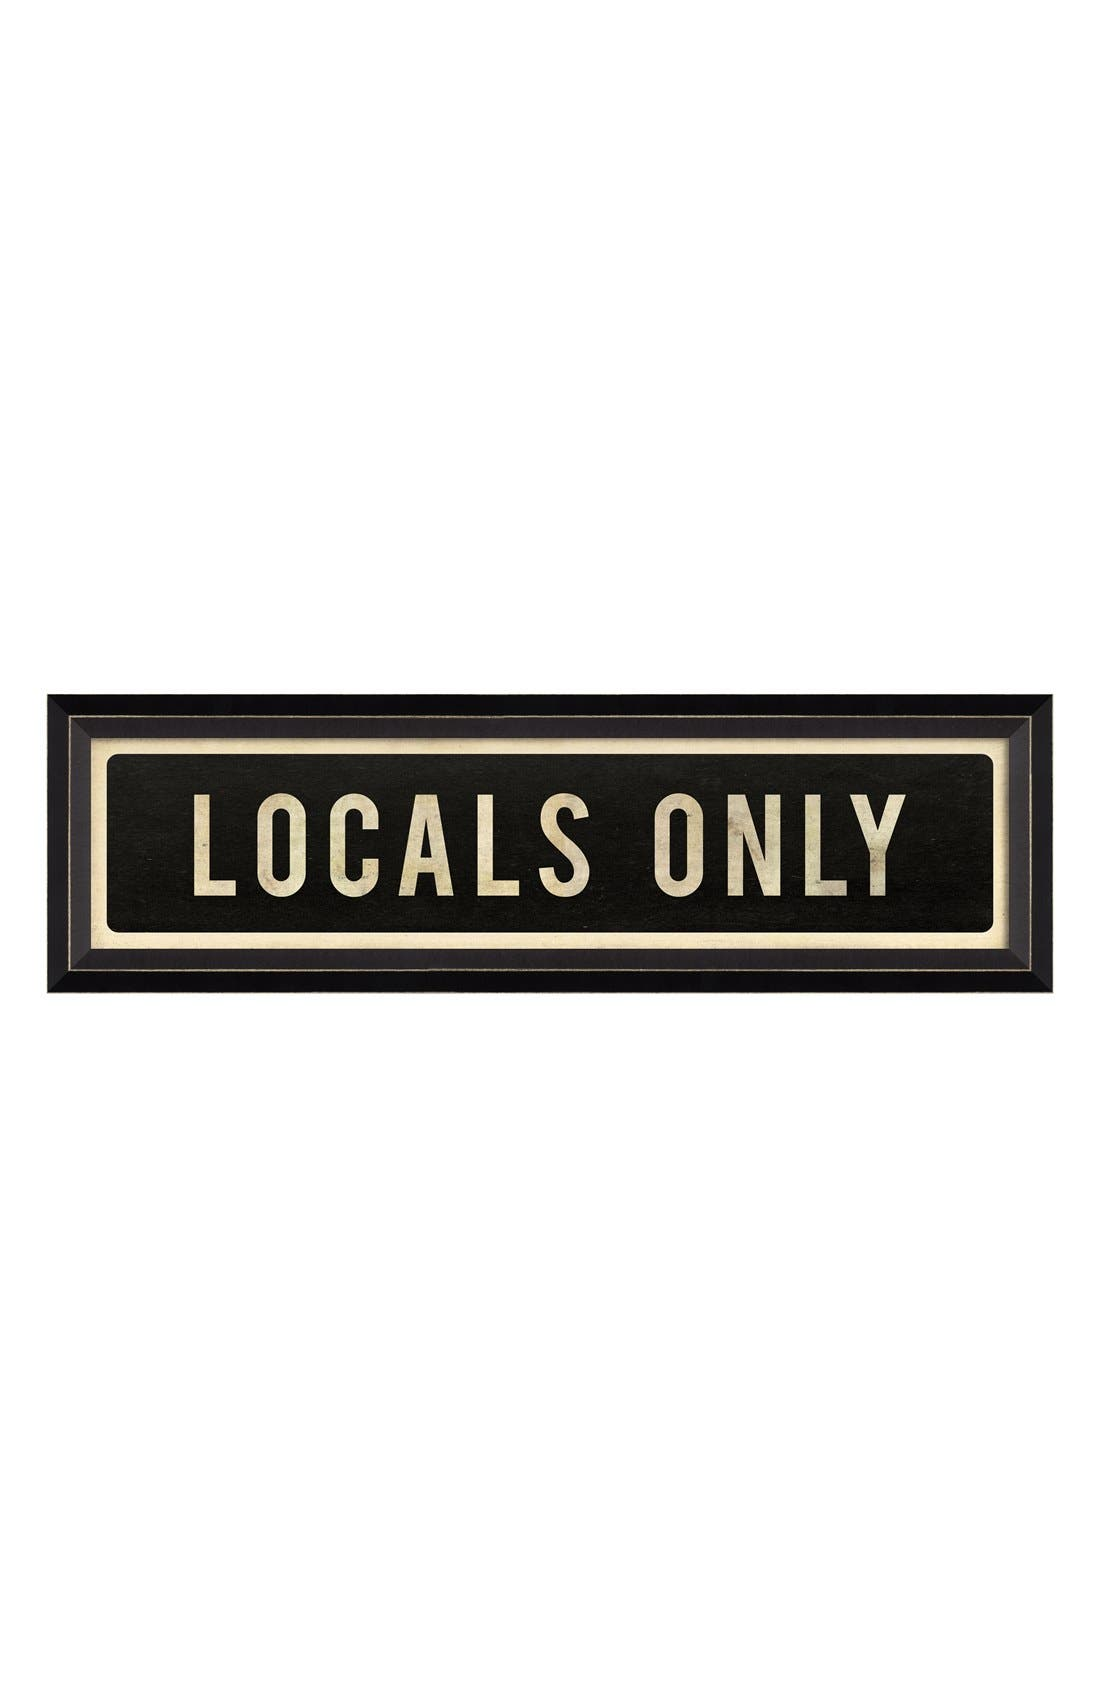 Main Image - Spicher and Company 'Locals Only' Vintage Look Street Sign Artwork